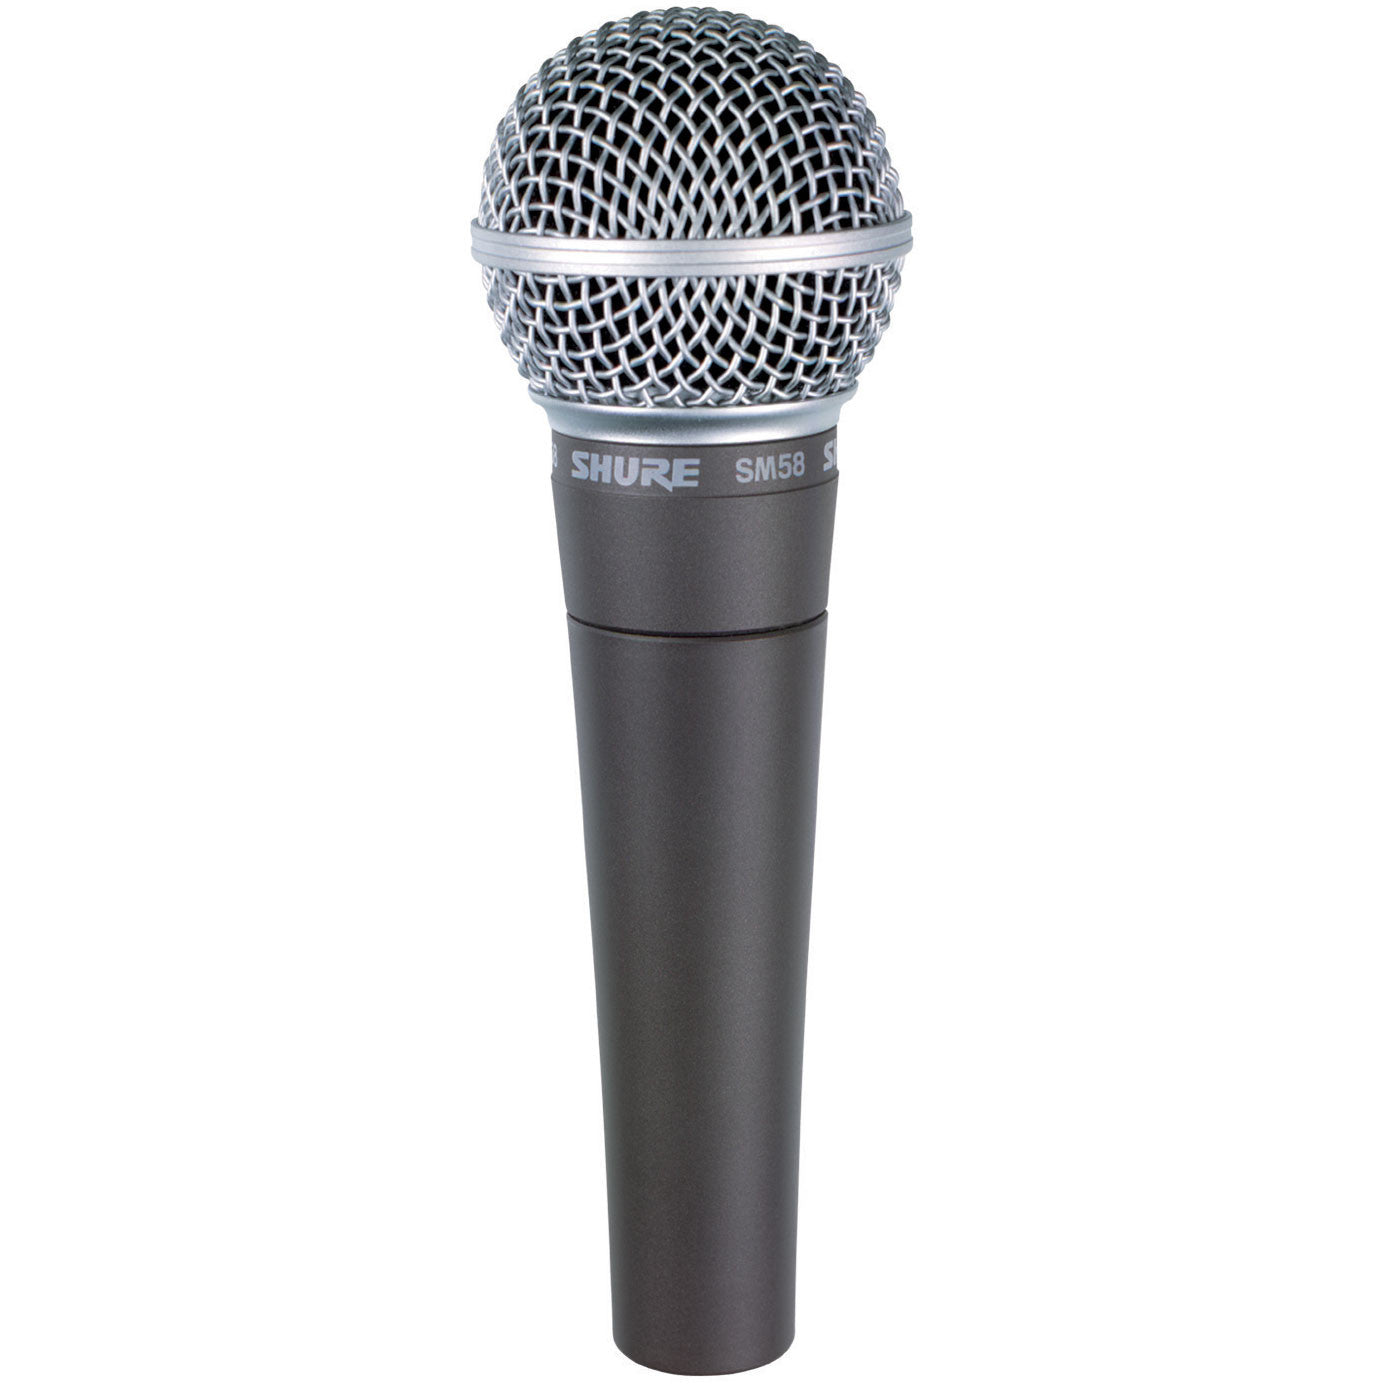 Shop online for Shure SM58-LC Vocal Performance Microphone today. Now available for purchase from Midlothian Music of Orland Park, Illinois, USA